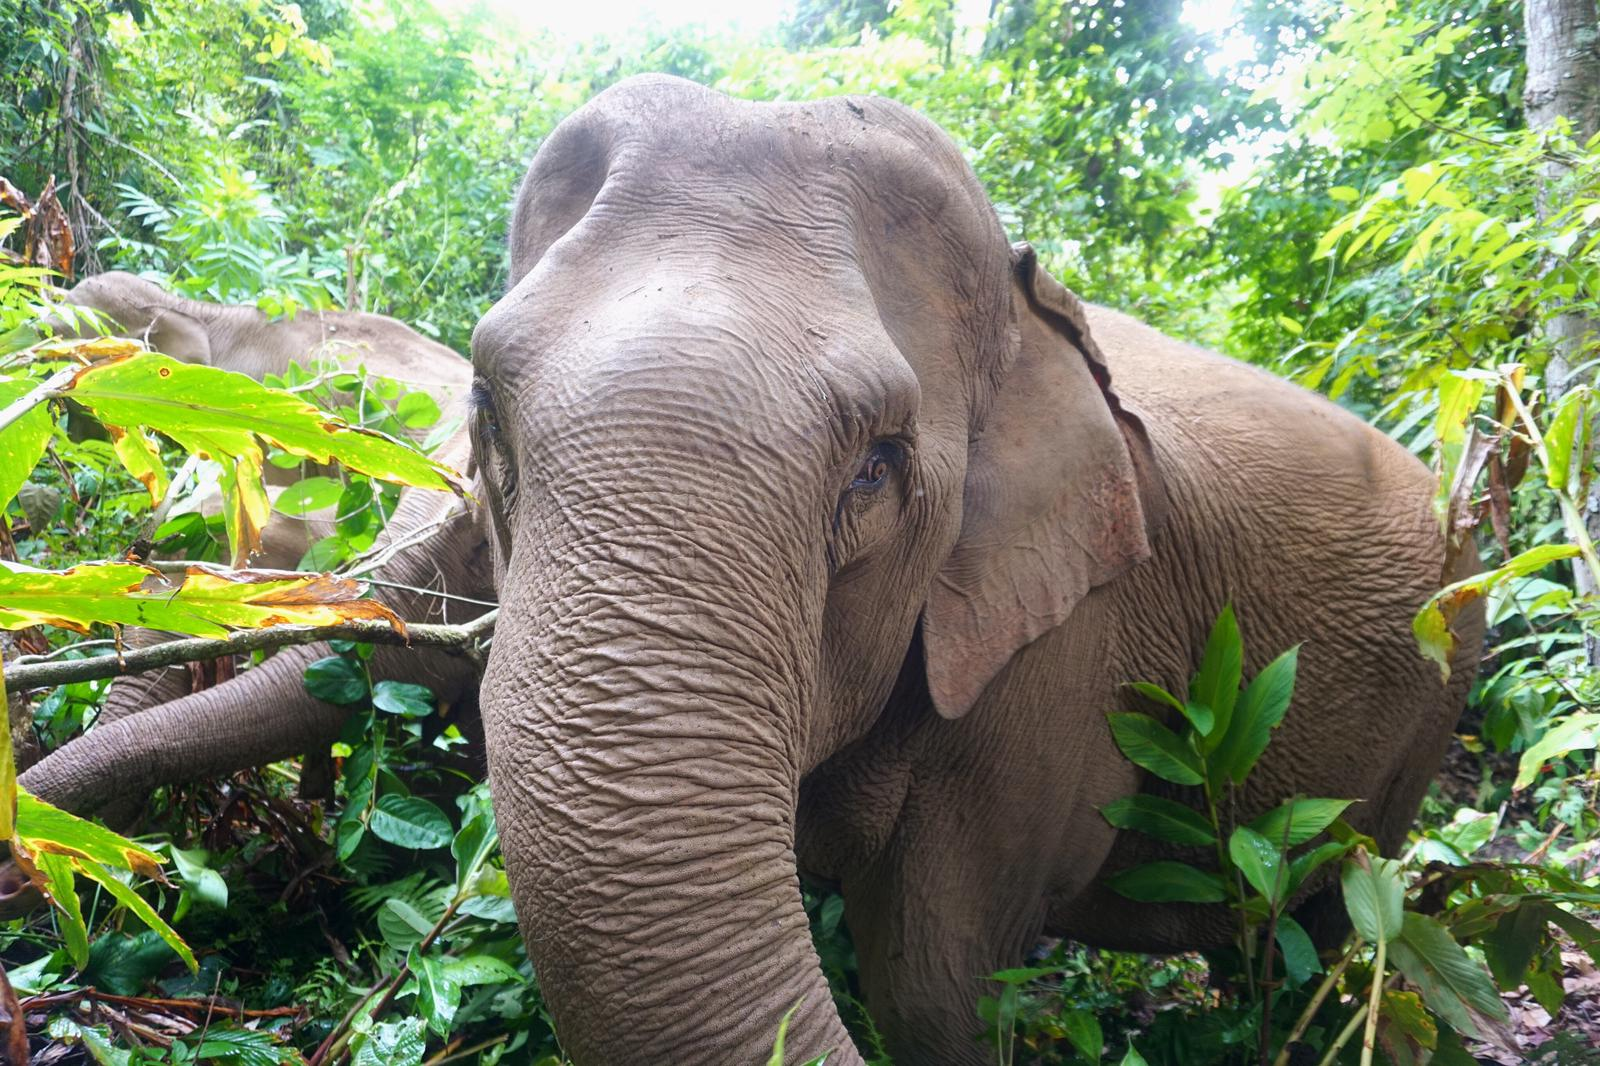 Mo Mo Lo, 35 years old, is one of the first elephants Never Forget Elephant Foundation brought home. She used to give rides to tourists in Chiang Mai and now spends her days living as nature intended in the jungle.